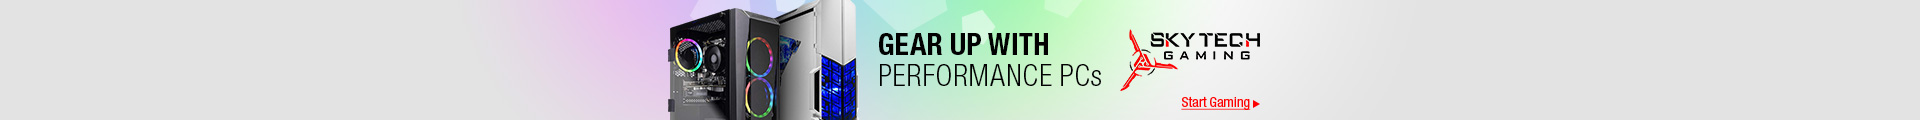 GEAR UP WITH PERFORMANCE PCs